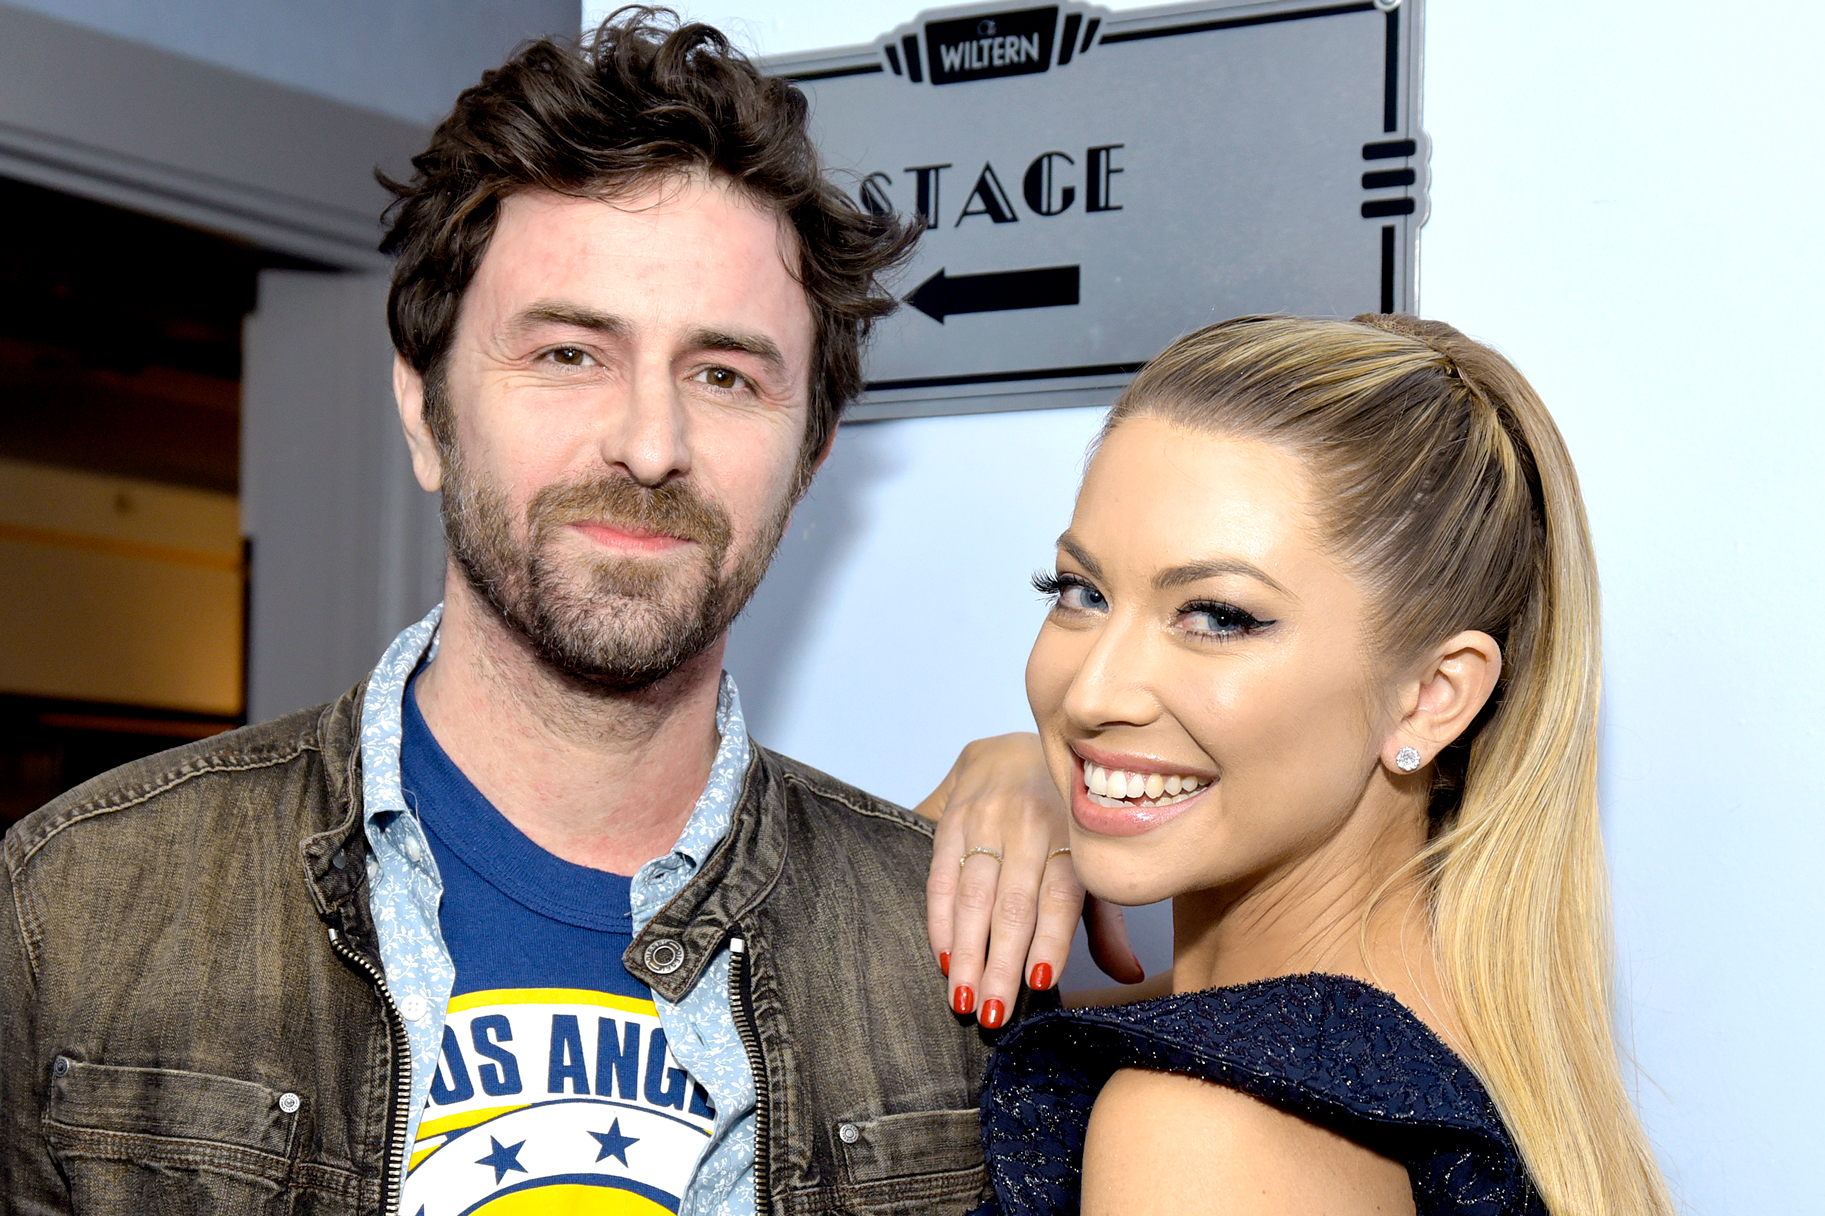 Stassi Schroeder Reveals Whether She and Beau Clark Will Get a Prenup